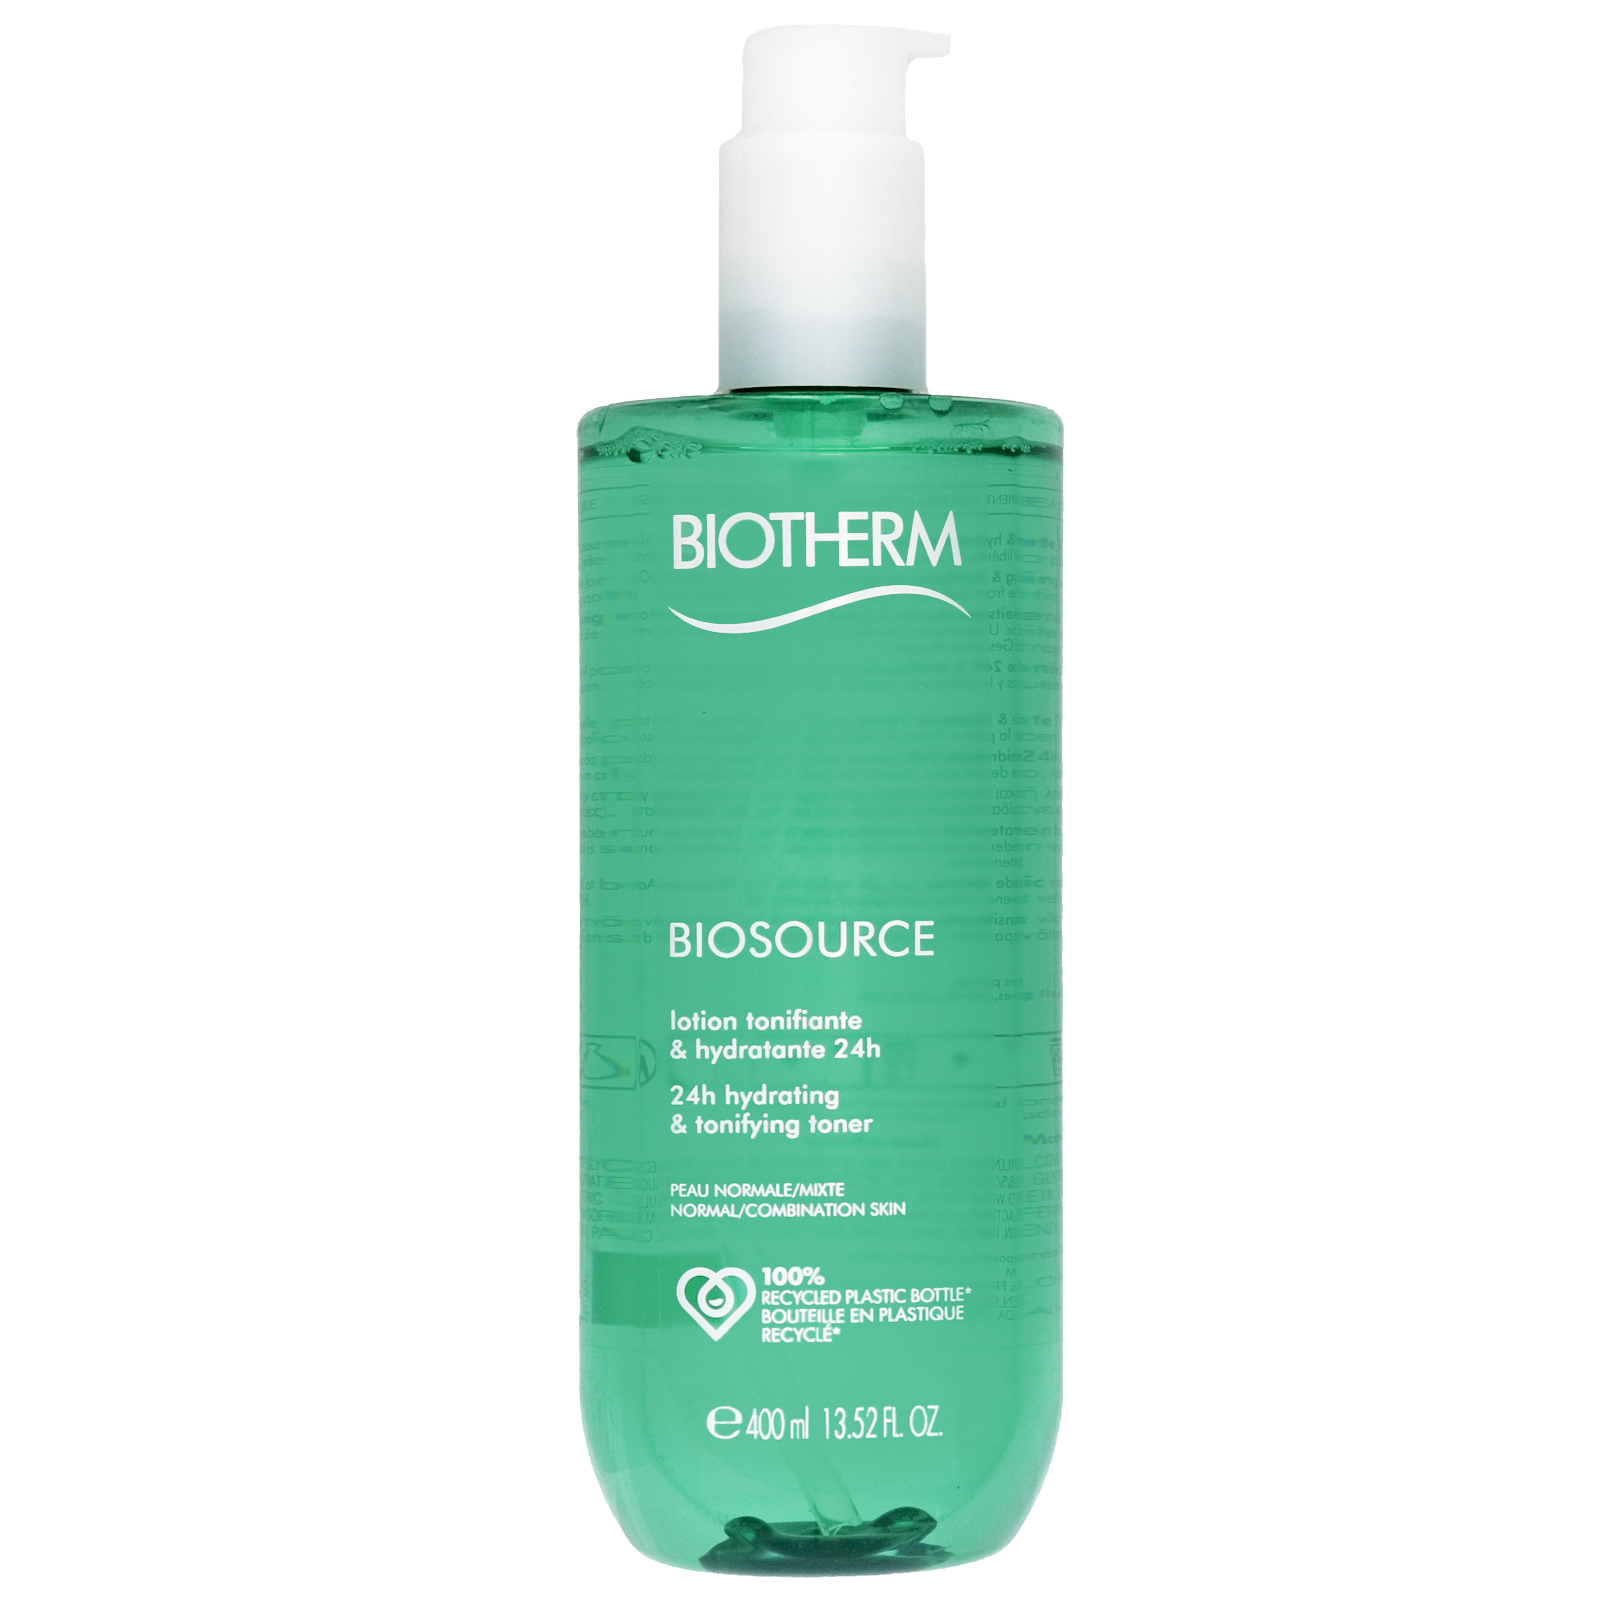 Biotherm Biosource 24h Hydrating and Tonifying Toner For Normal/ Combination Skin 400ml